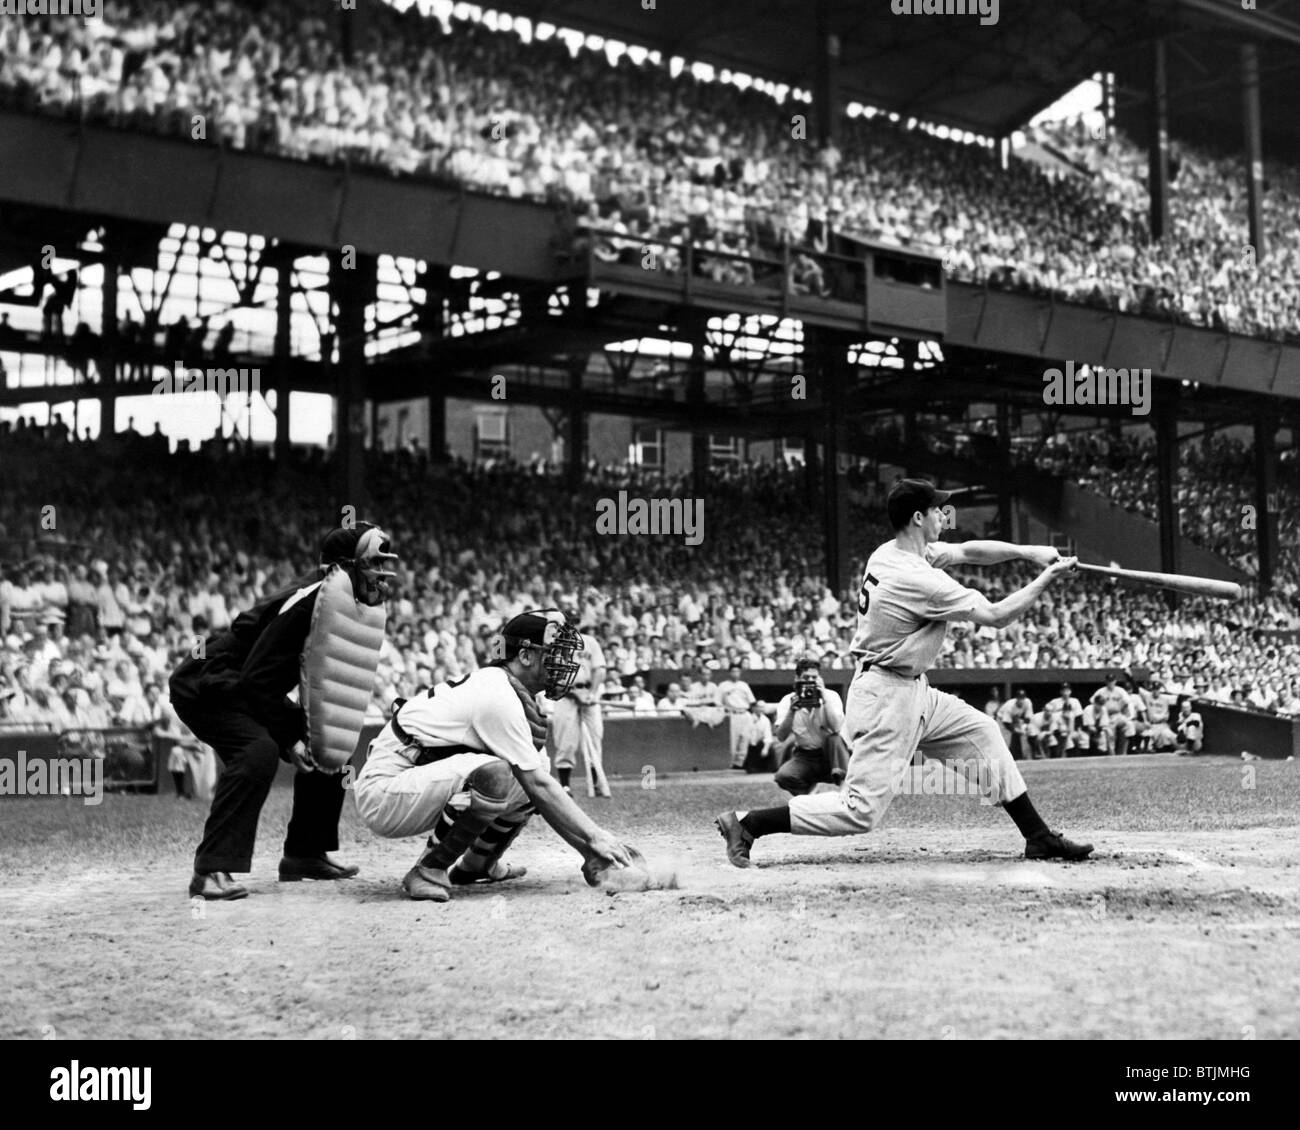 Joe DiMaggio breaks the record for hitting safely in consecutive games. This hit brought his streak to 42 games, Stock Photo